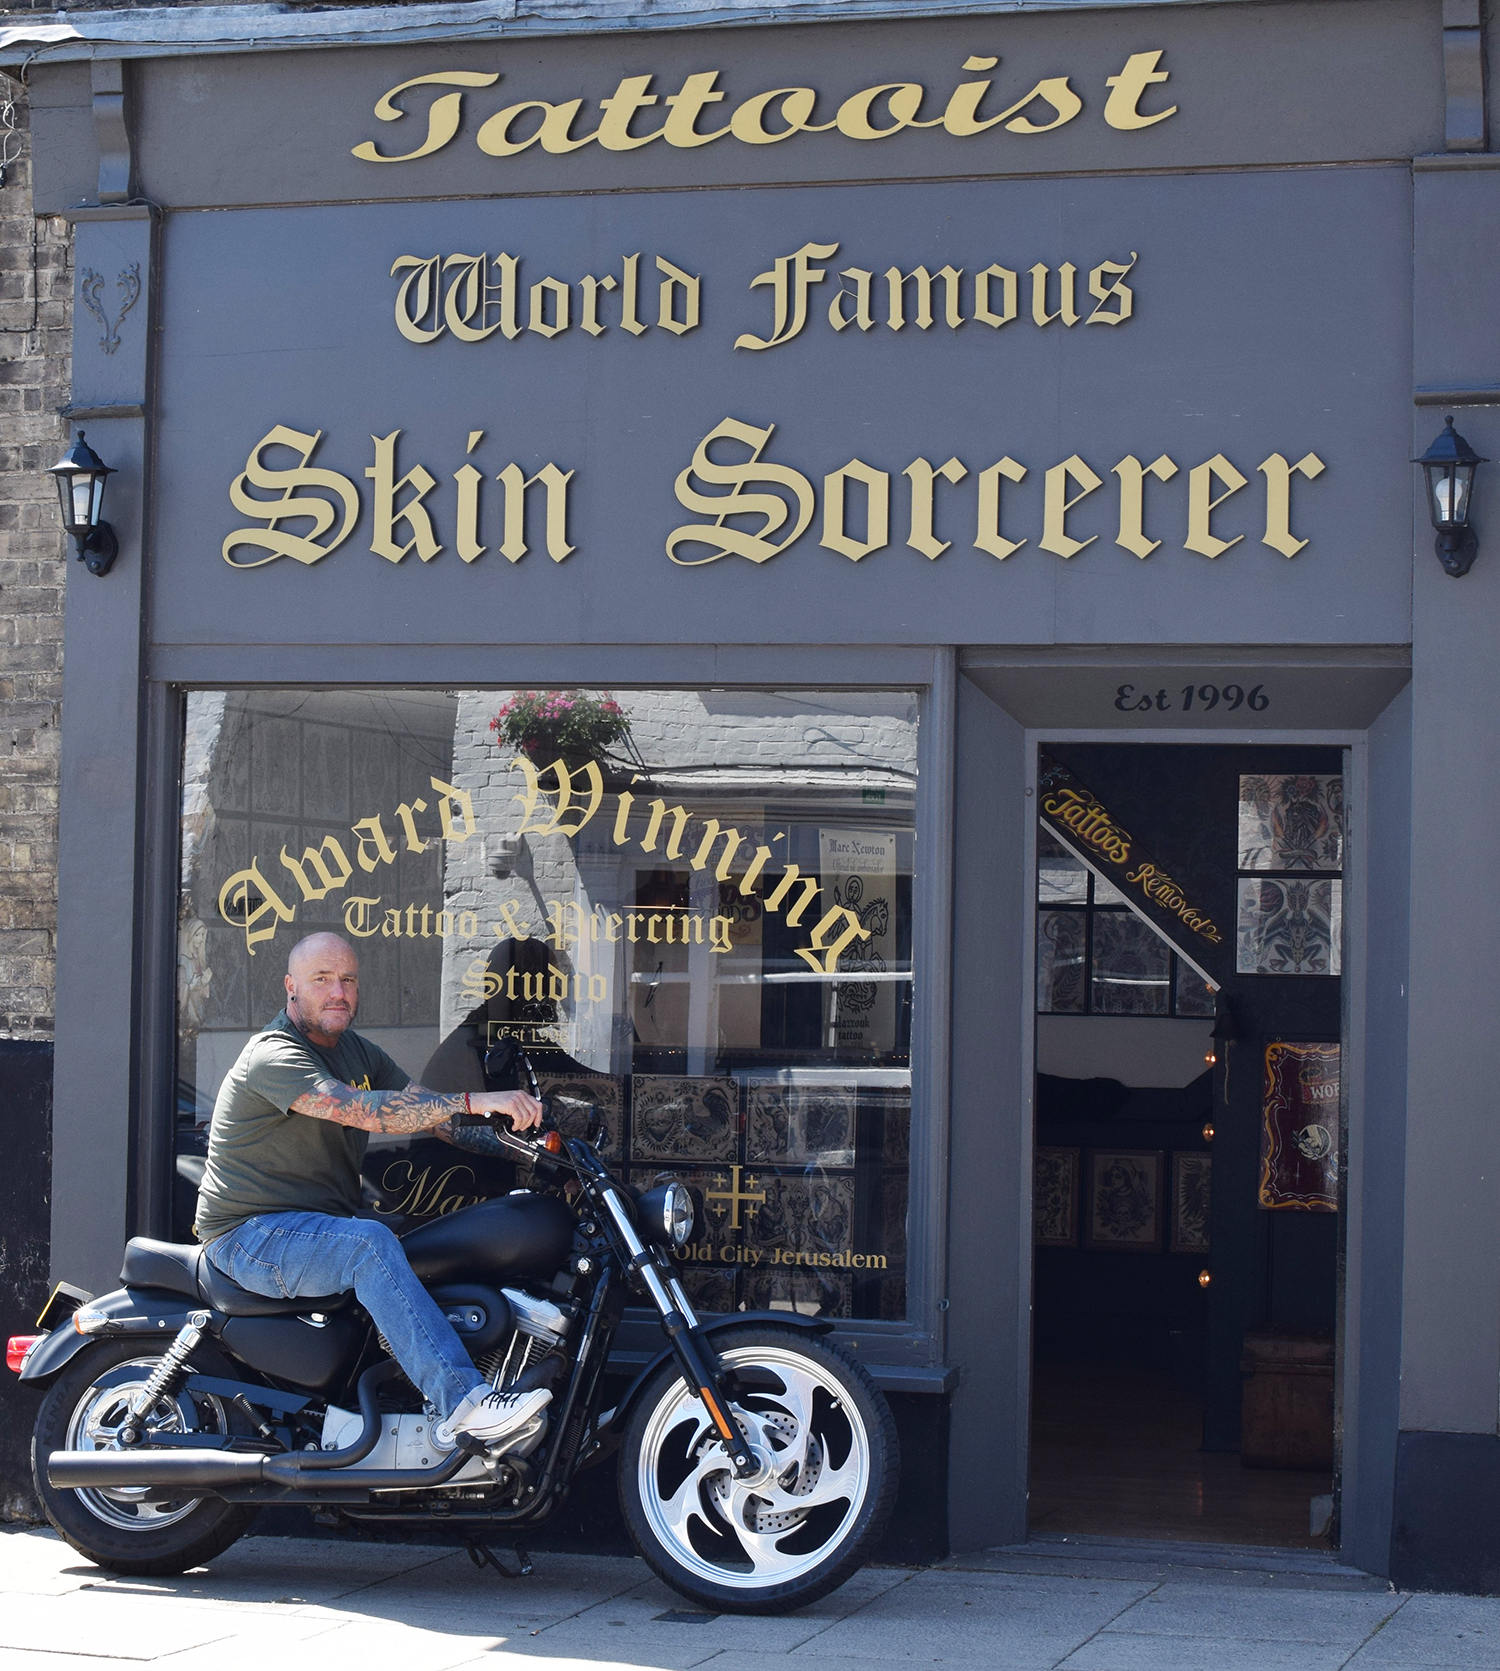 tattoo anthropologist Stephen c stratton on his motorcycle in front of the world famous skin sorcerer tattoo studio